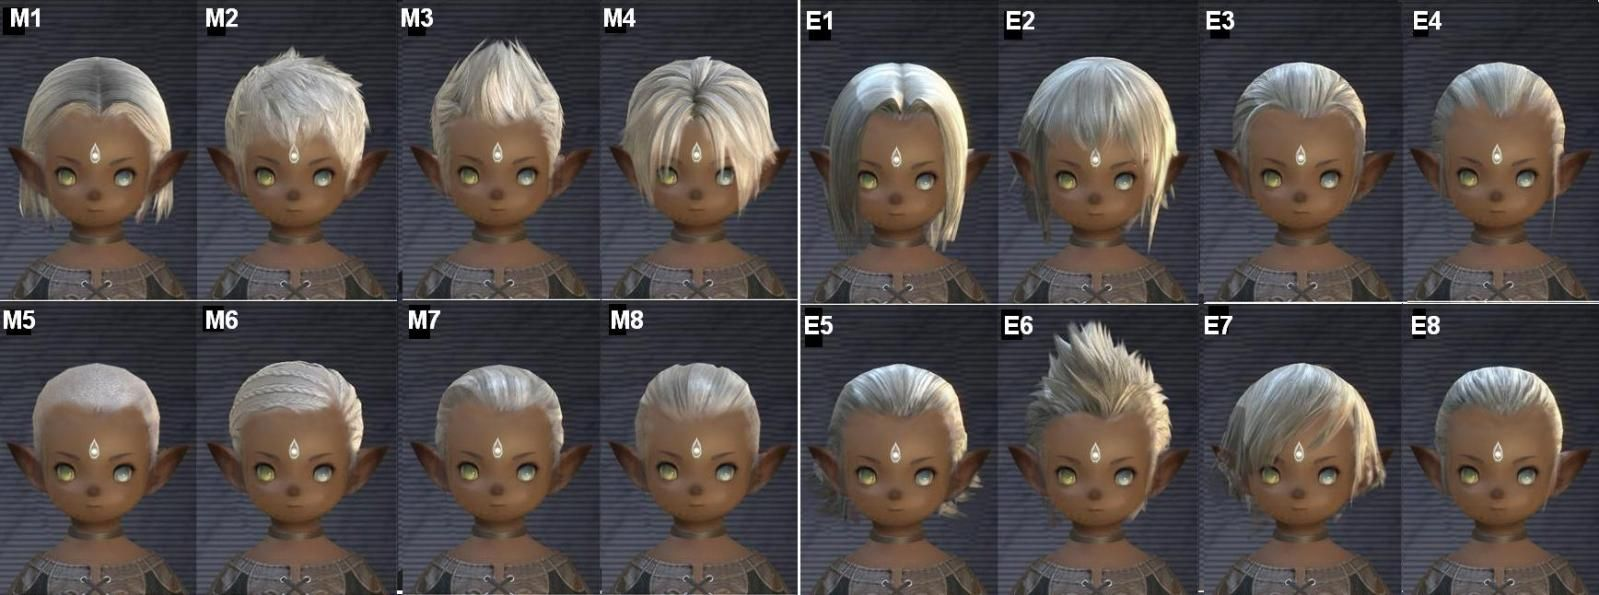 final fantasy xiv: a realm reborn - lalafell shared hairstyles